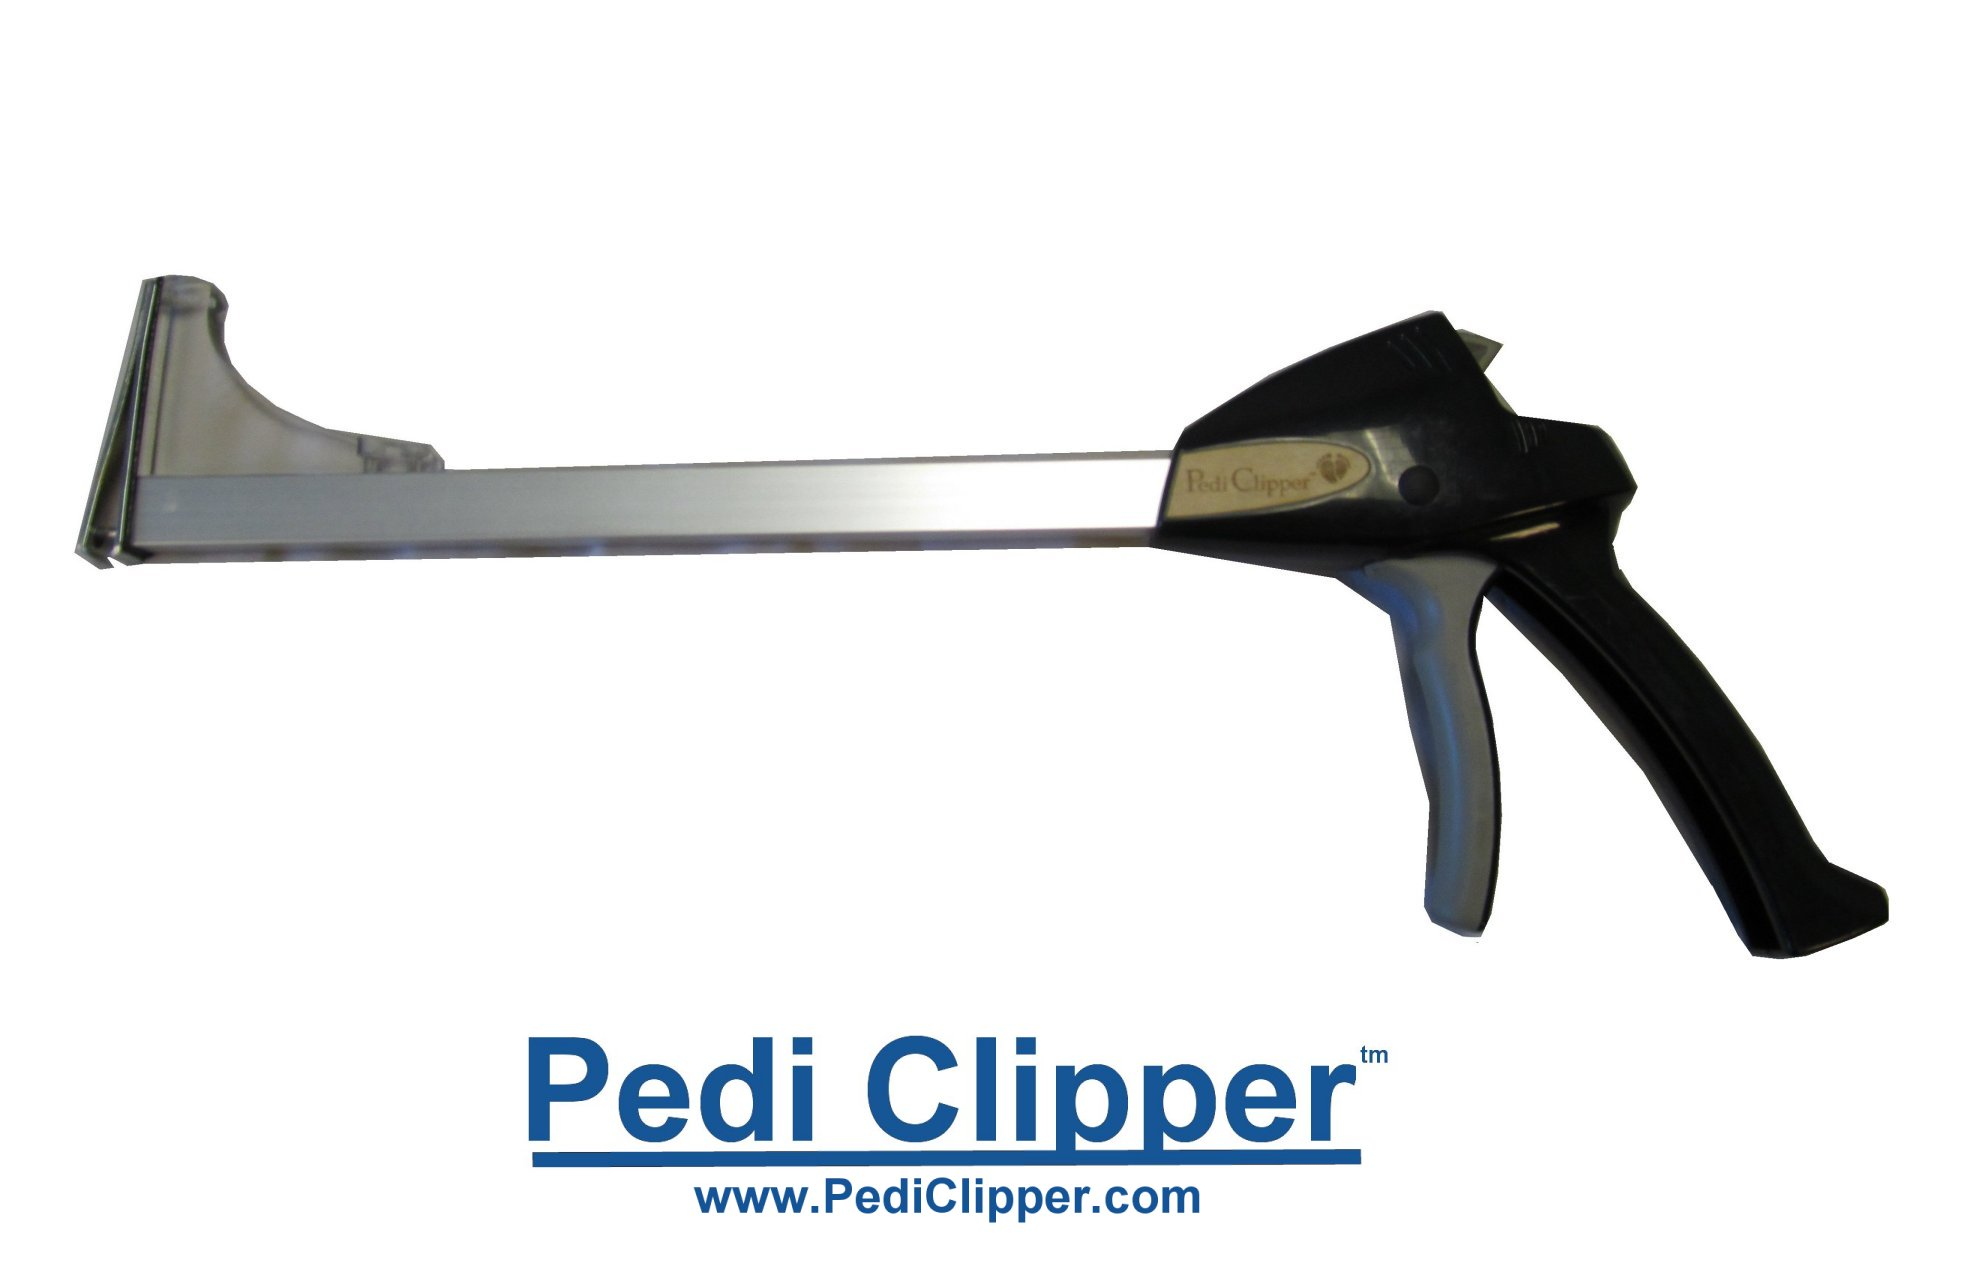 Pedi Clipper™ Long-handled Toenail Clipper Launches! -- Practical ...